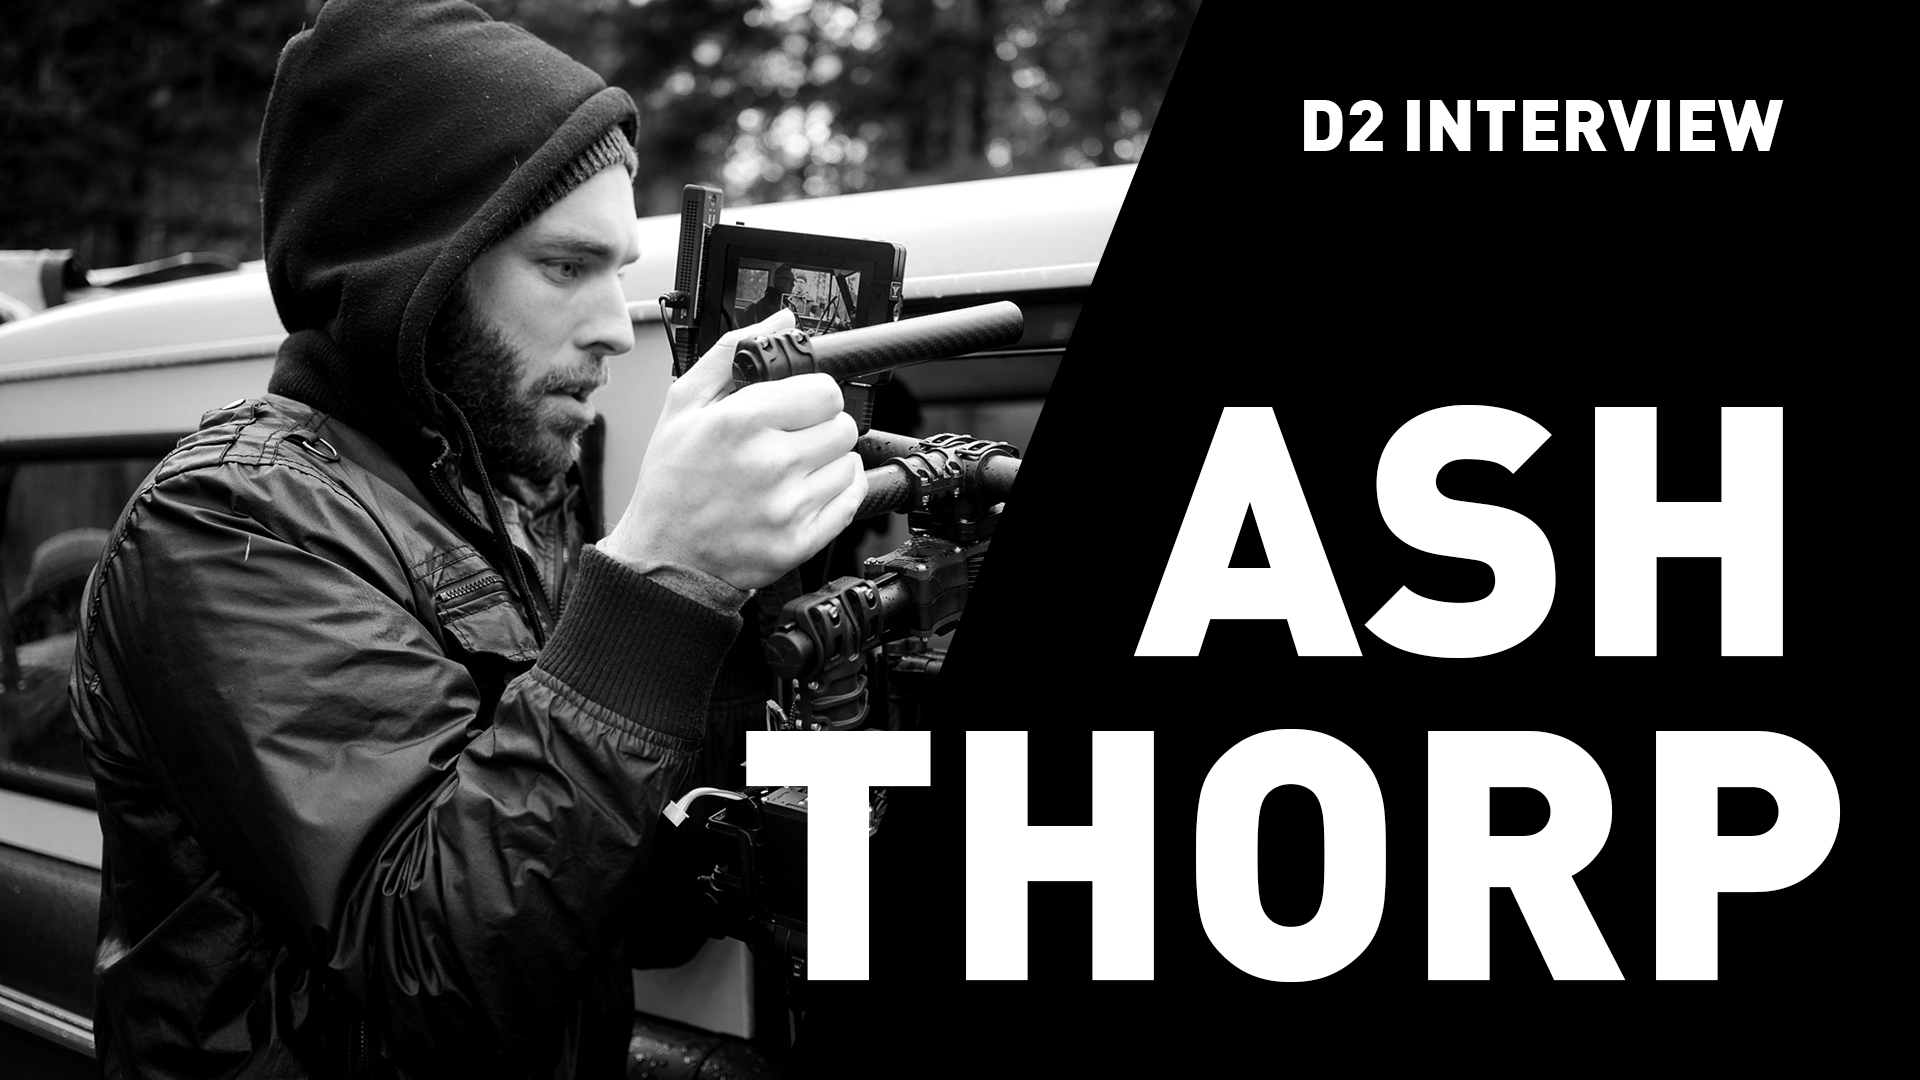 D2 Interview: Ash Thorp at the DDD / OFFF Italia